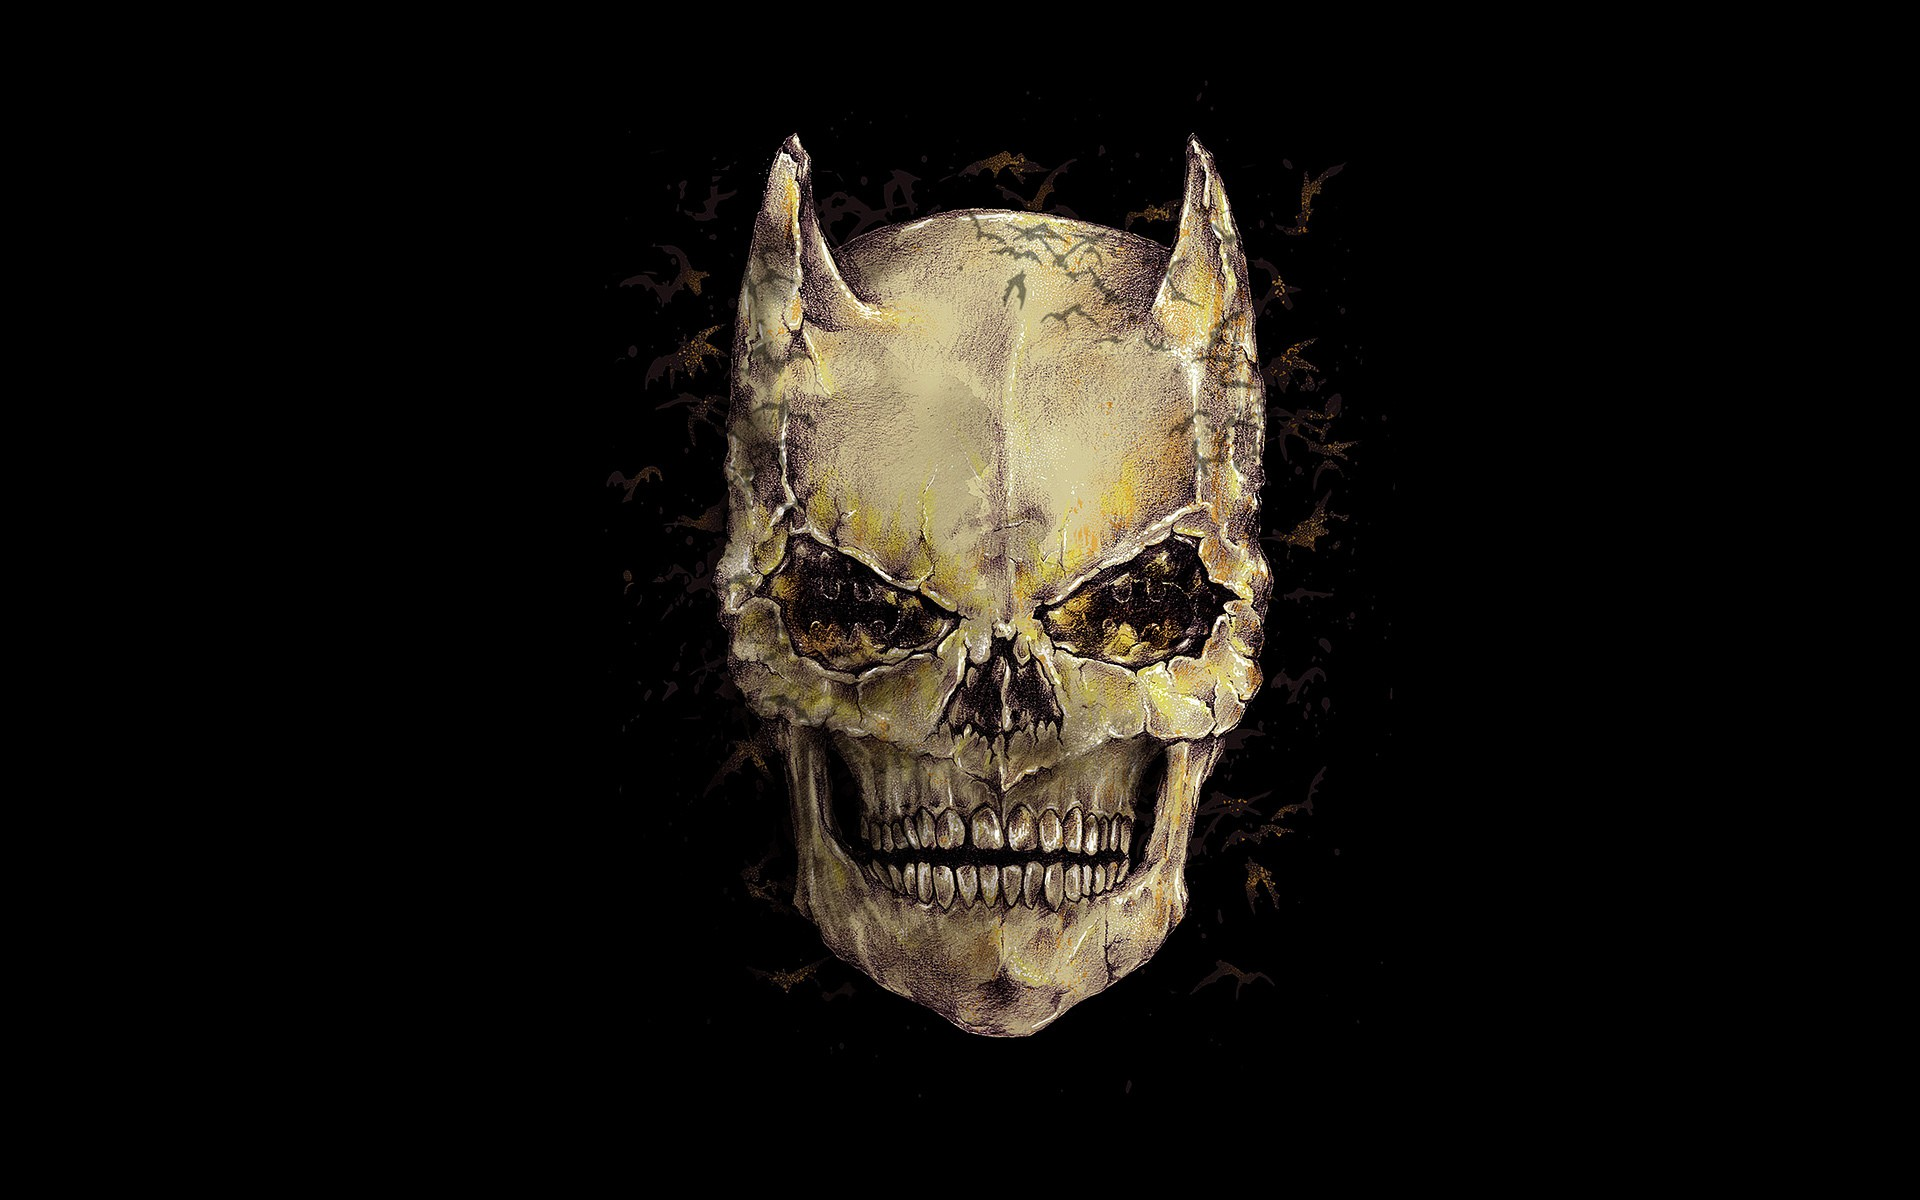 1920x1080 Girls And Guuns Wallpapers Skull Batman Artwork Wallpapers Hd Desktop And Mobile